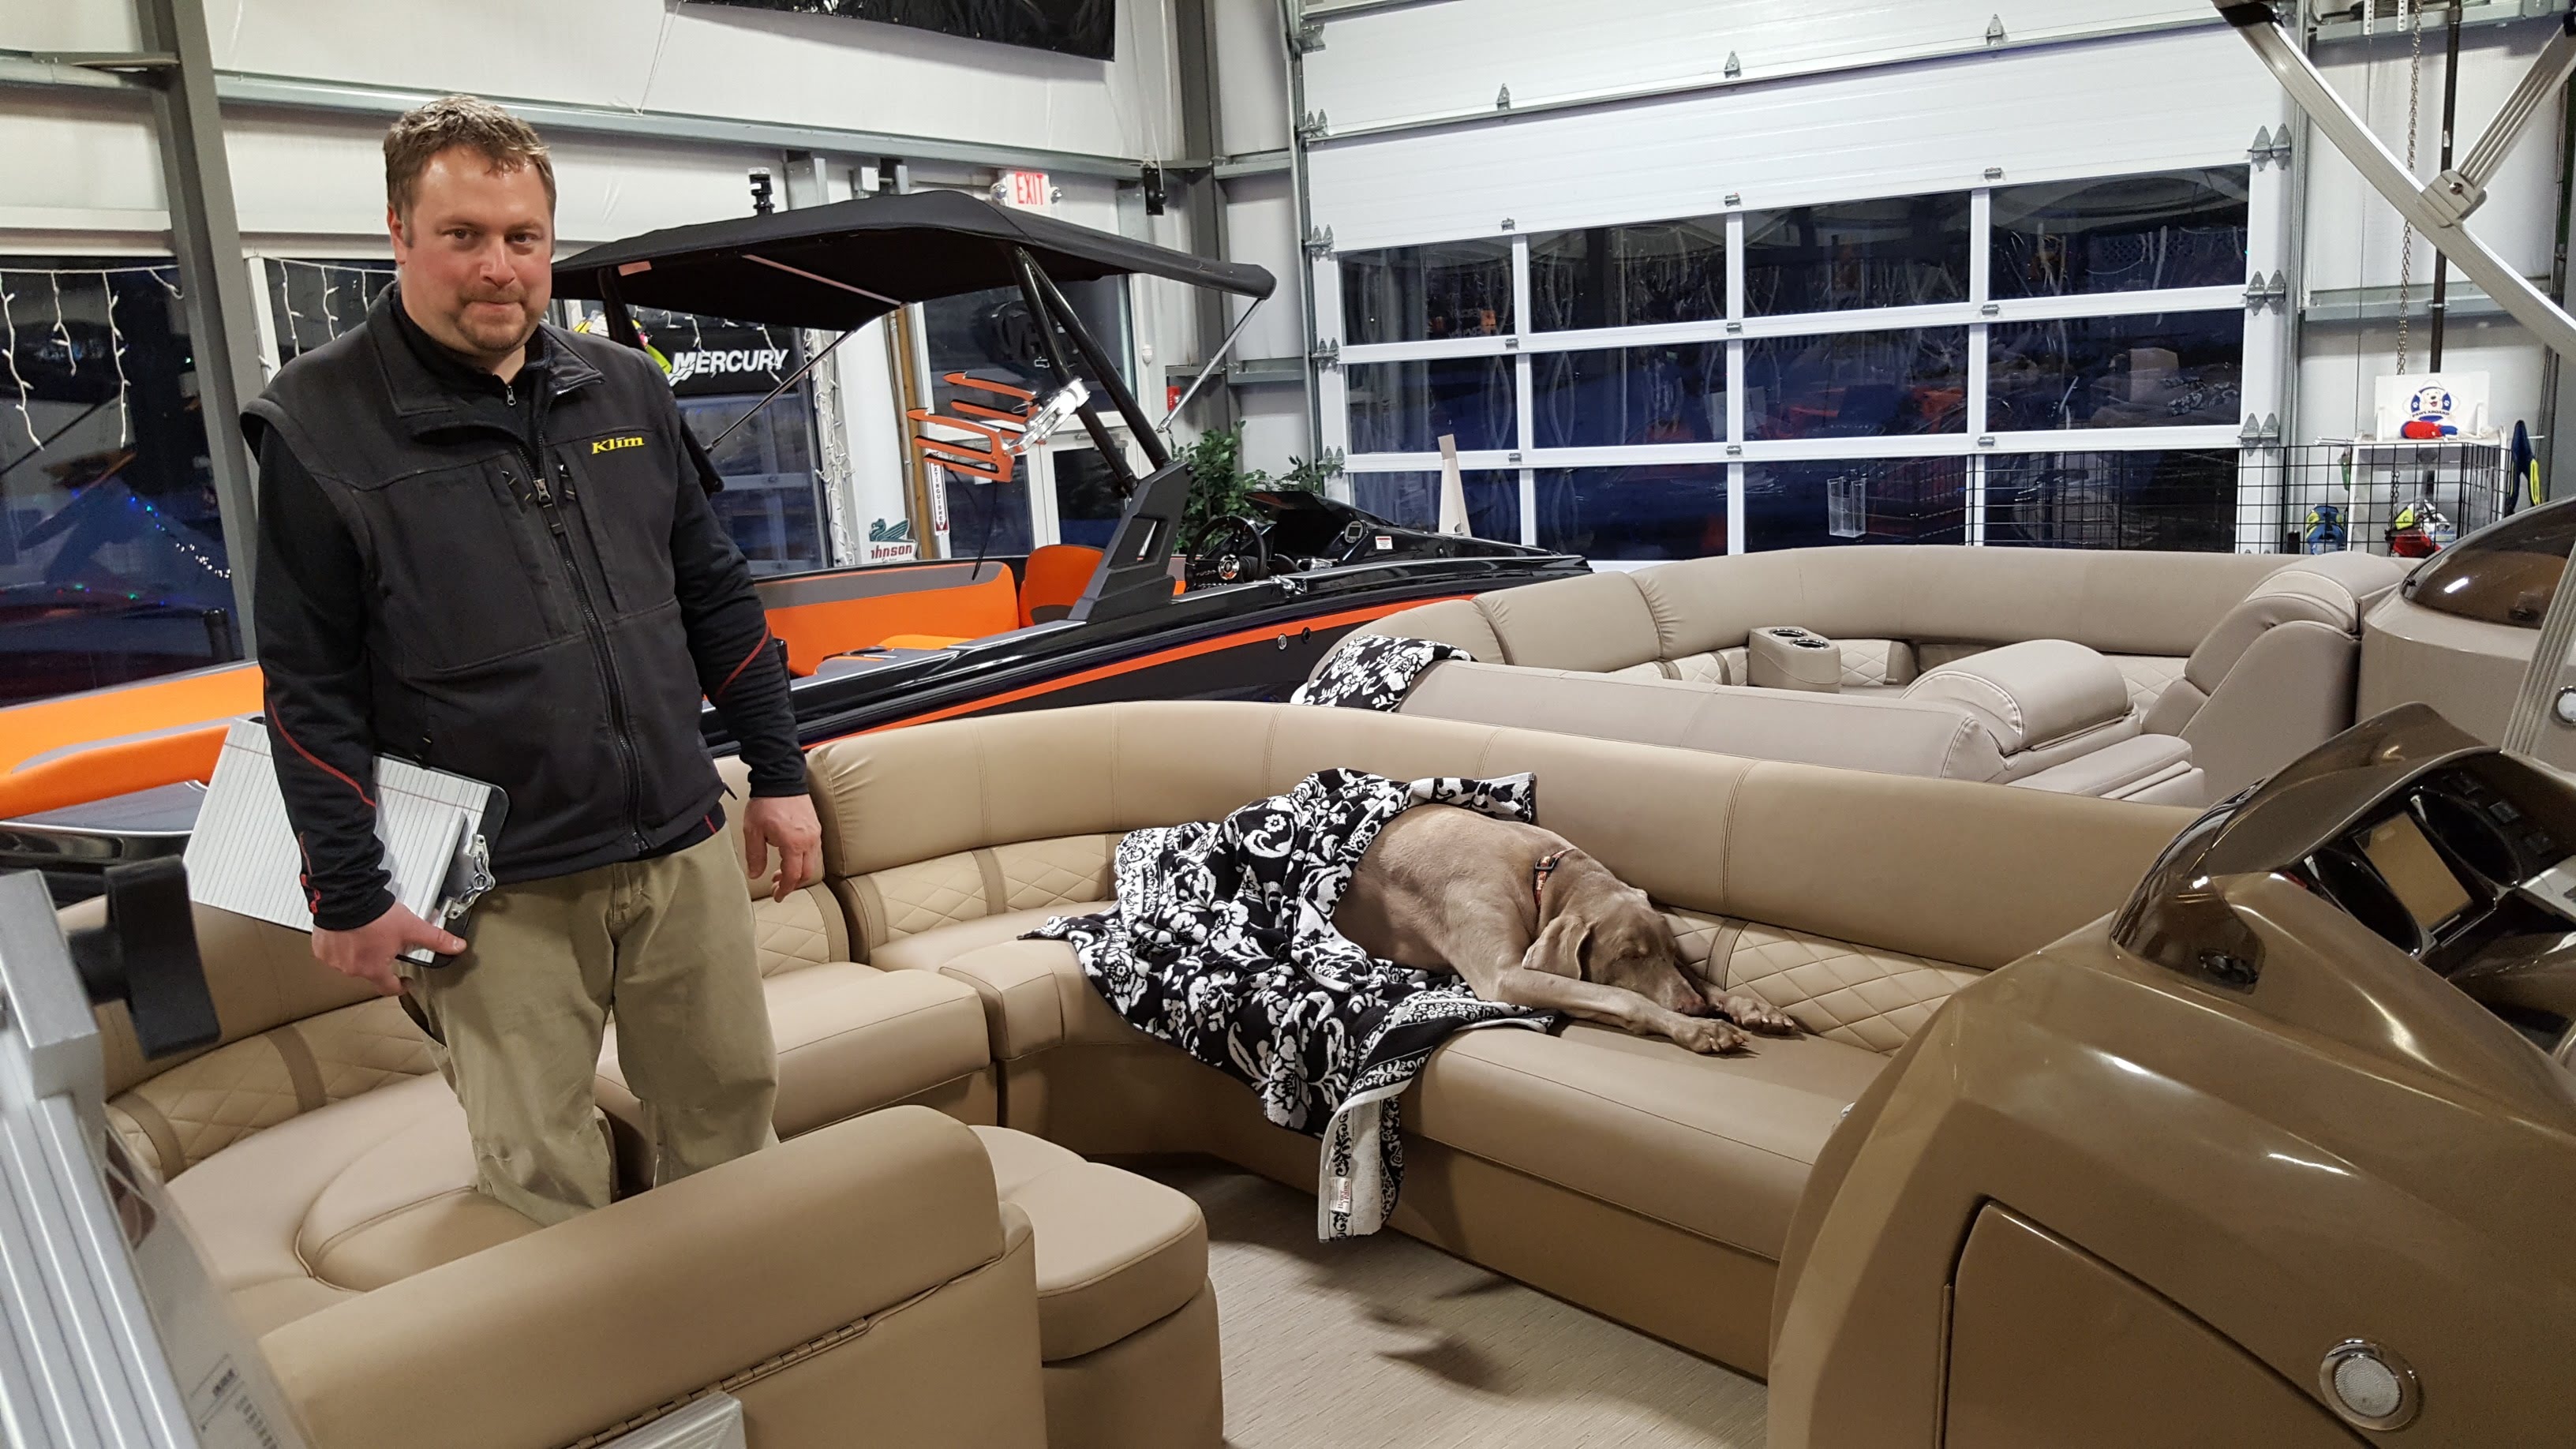 02 02 18 Duke Was Checking Out The New Seats In The 2018 Bennington Pontoon  Boats And They Are Soooo Comfortable That He Ended Up Taking A Little  Snooze !!